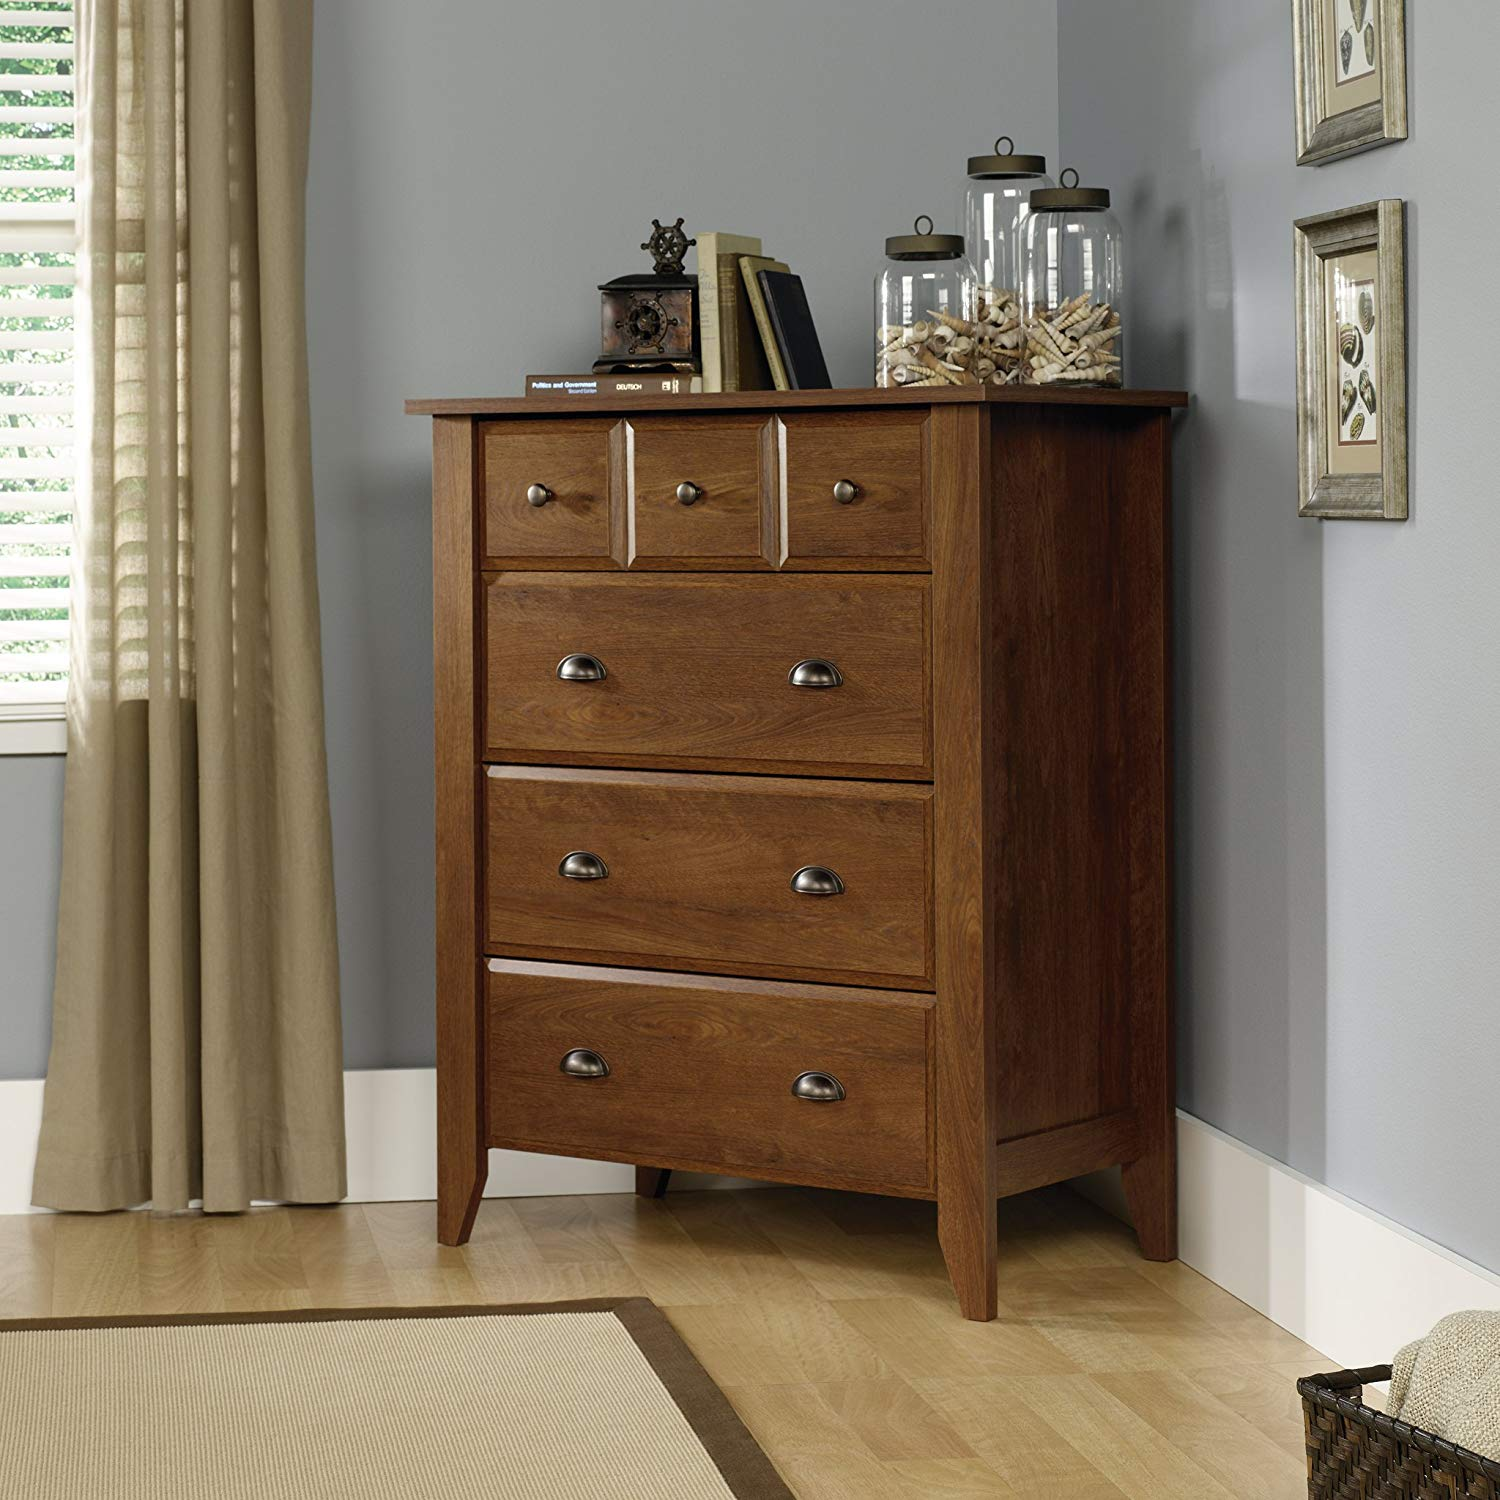 Sauder 410288 bedroom chest of drawer oiled oak